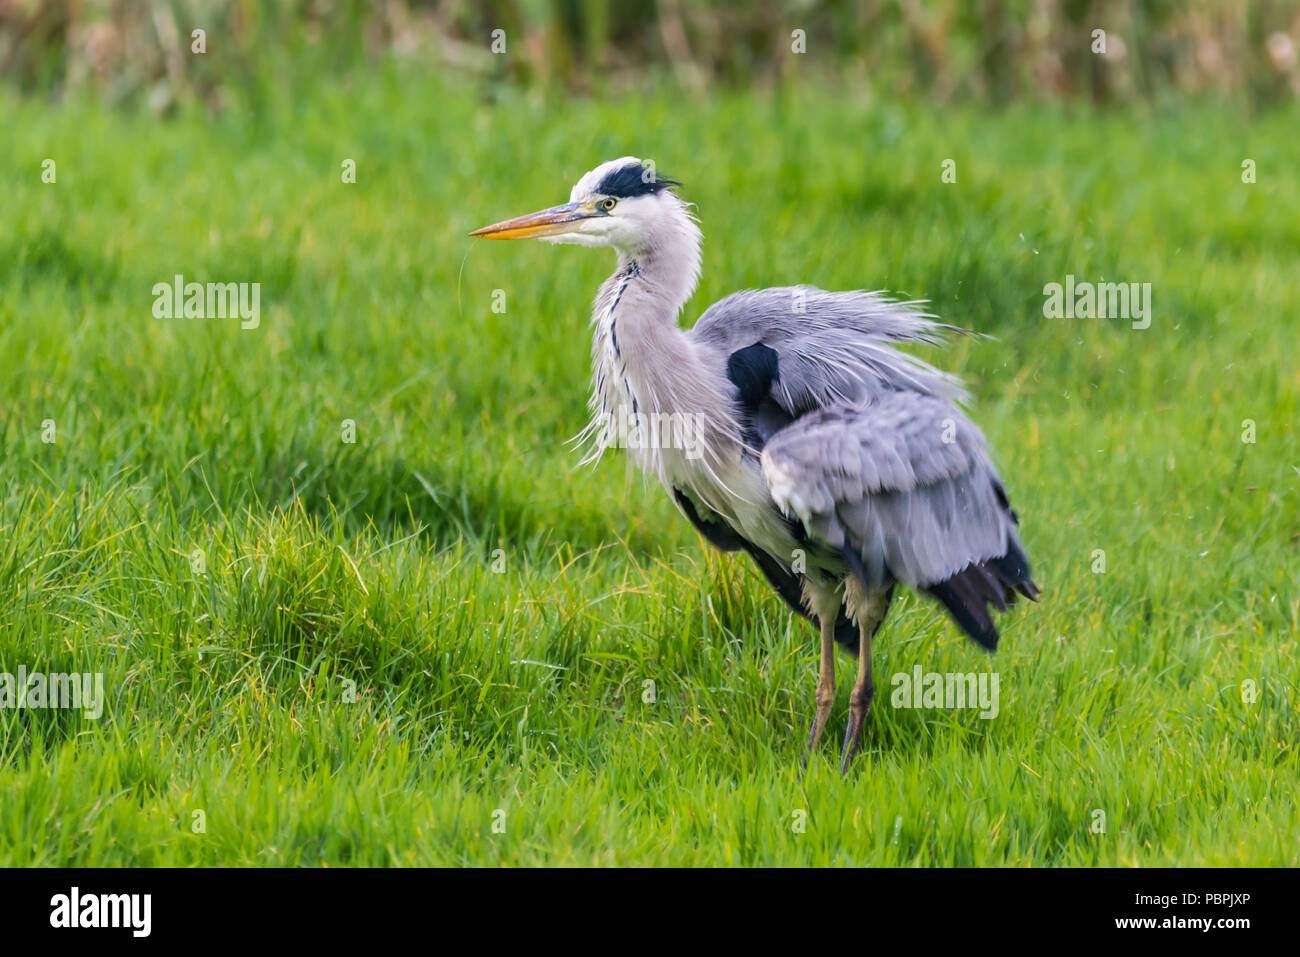 Grey Heron (Ardea cinerea) fluffing its feathers in a field in Autumn, in West Sussex, England, UK. - Stock Image